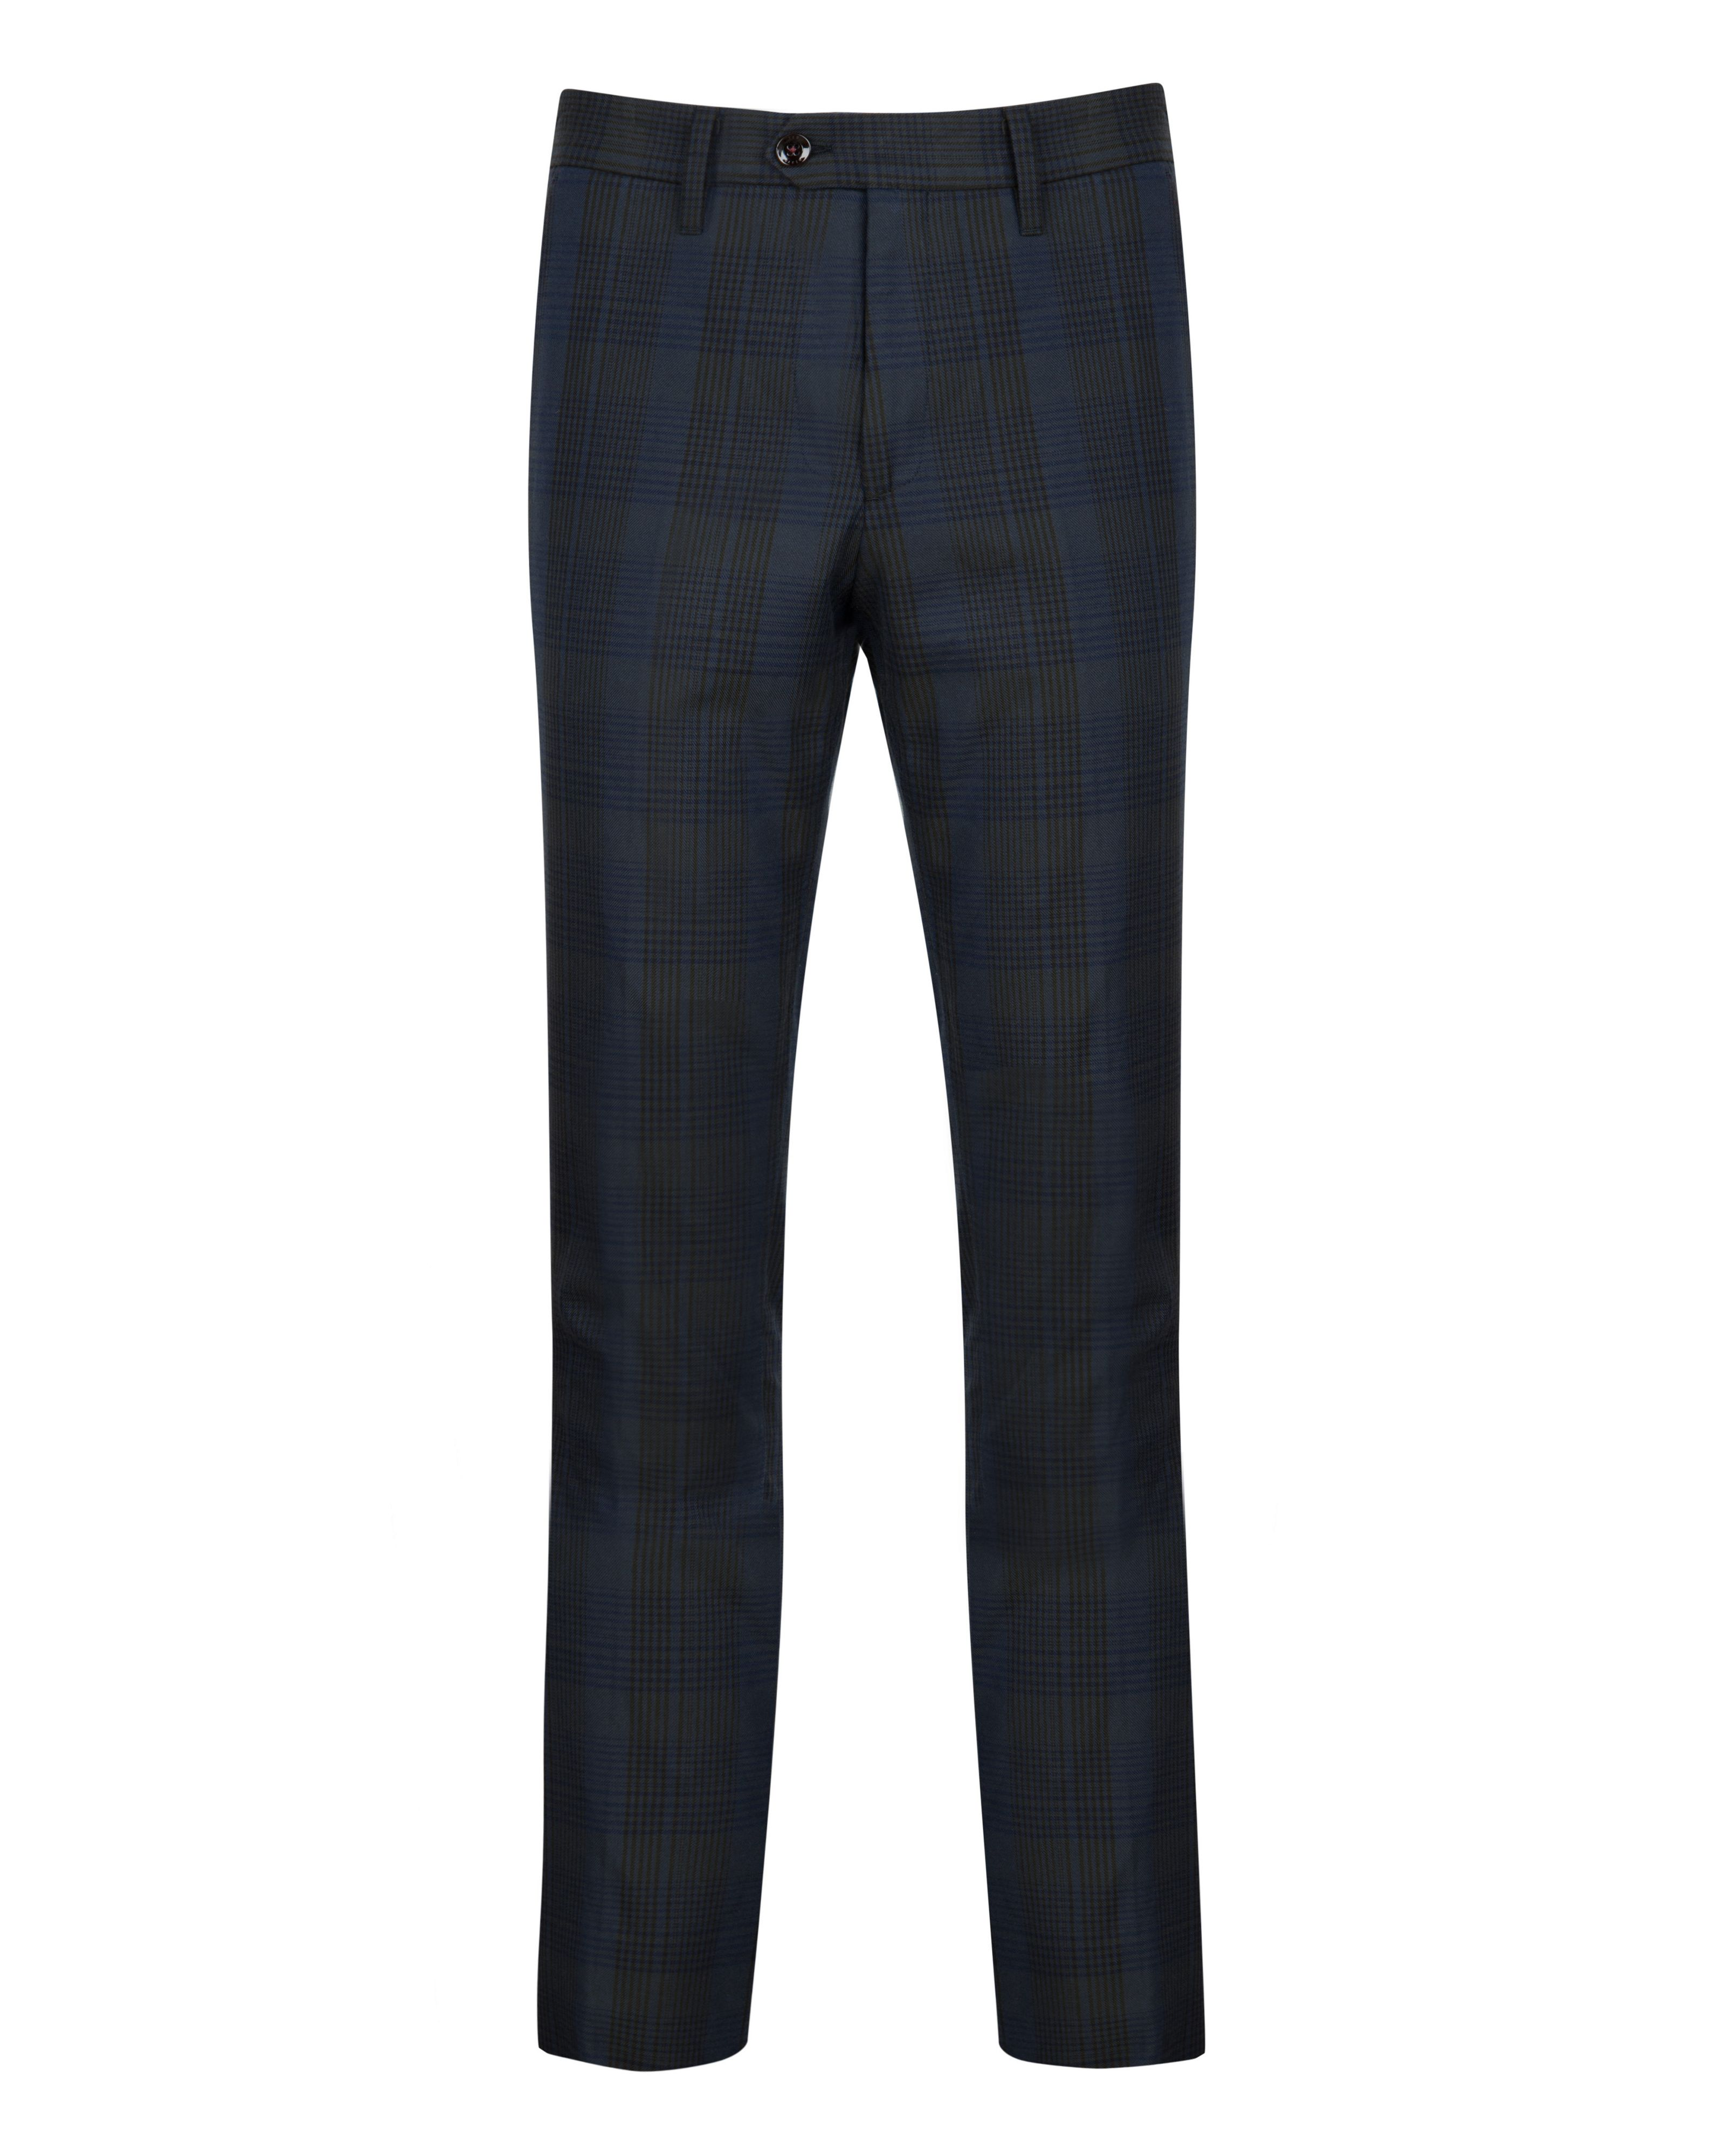 Theotro check cotton trouser